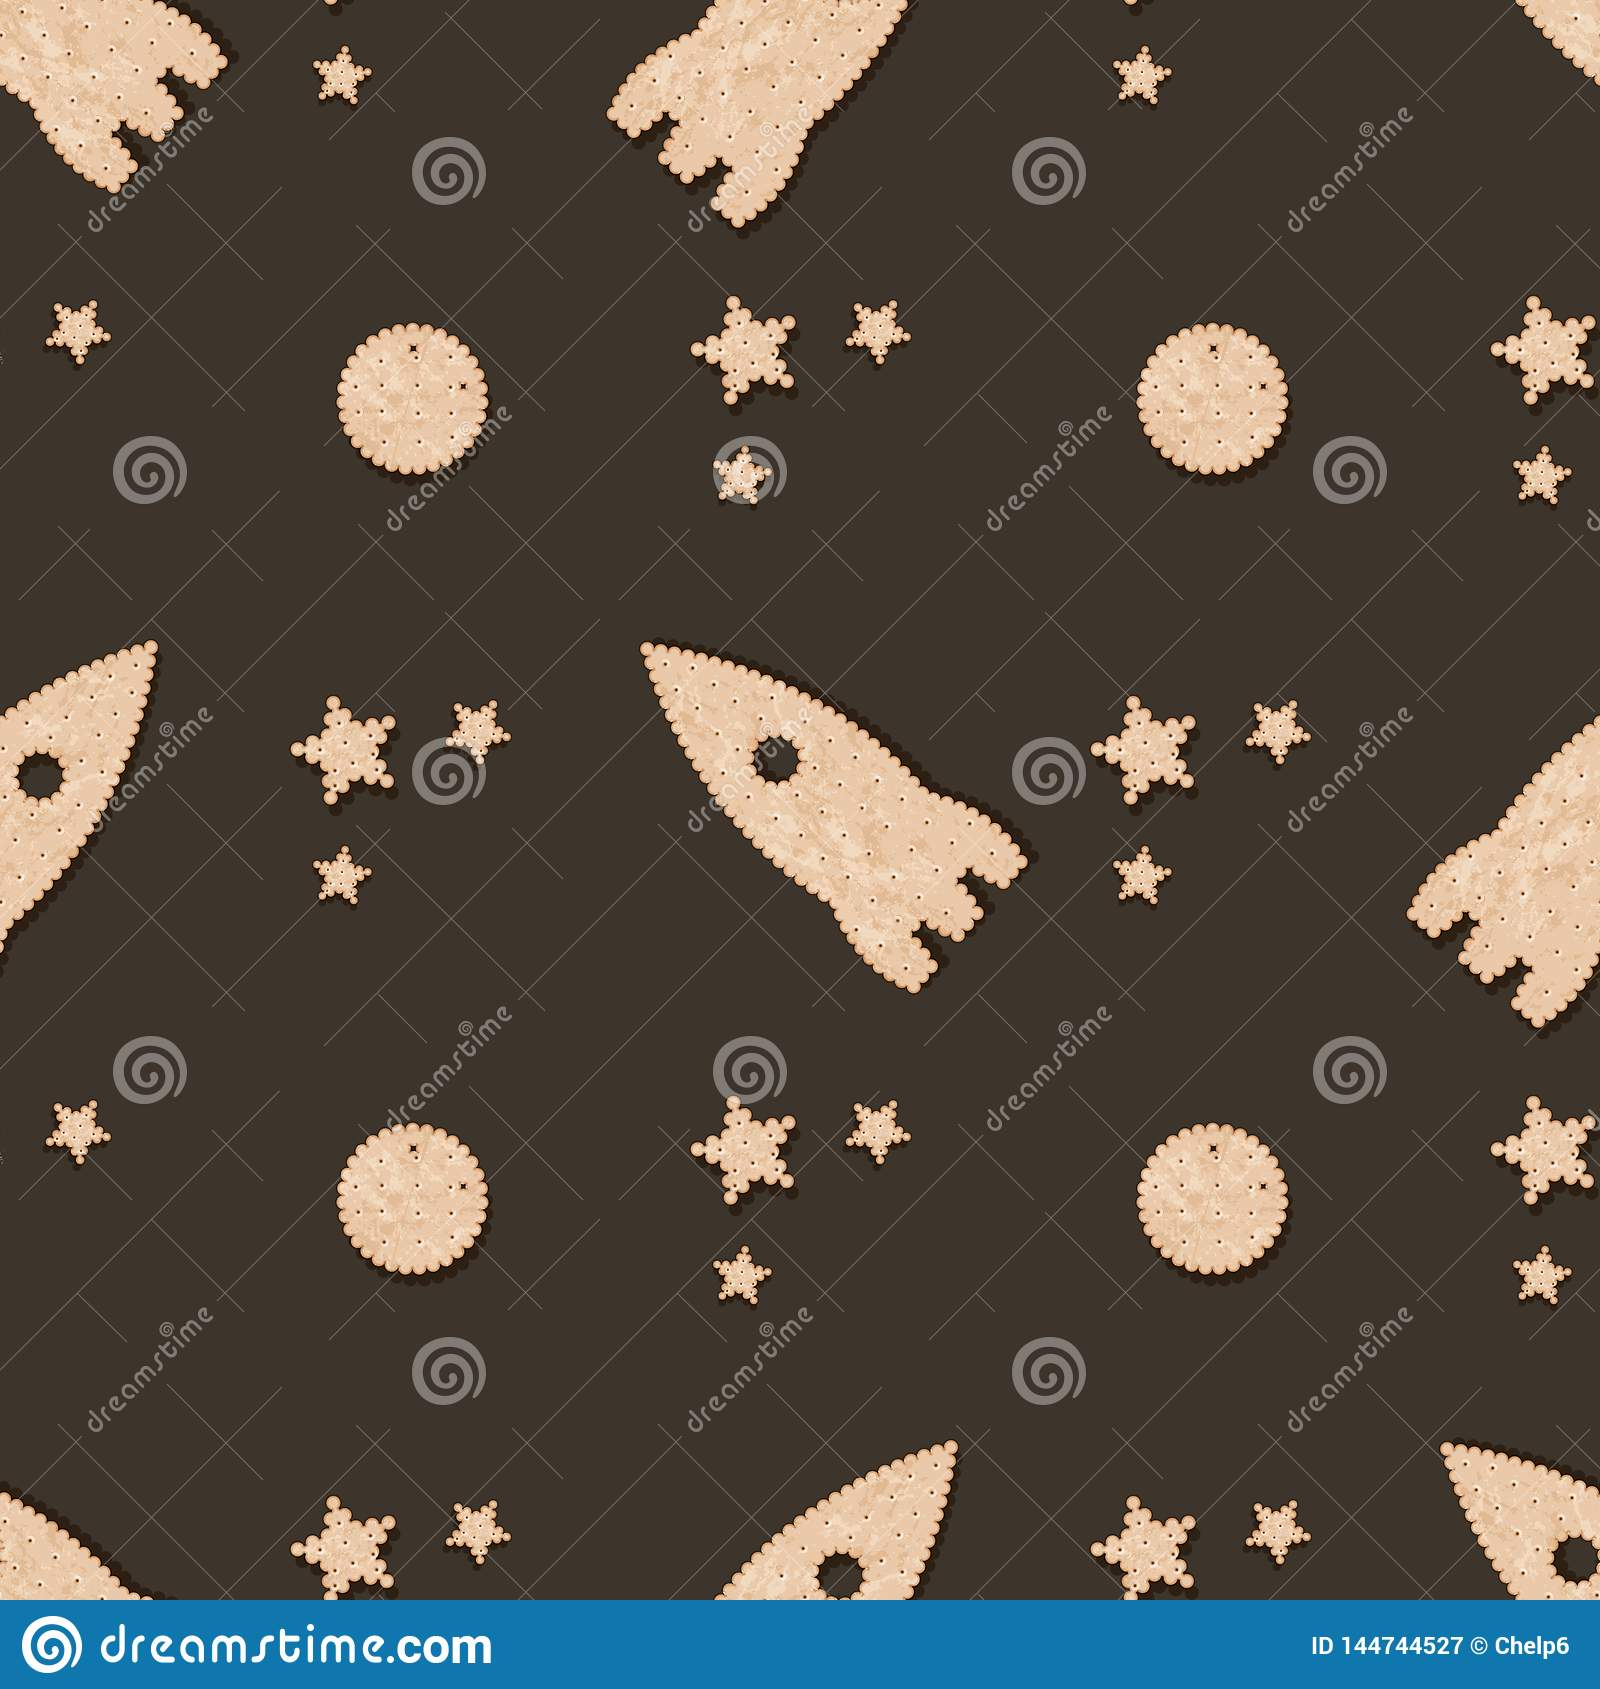 Seamless pattern with Biscuit cookie cracker. Rocket, moon and star cracker-shaped cookies